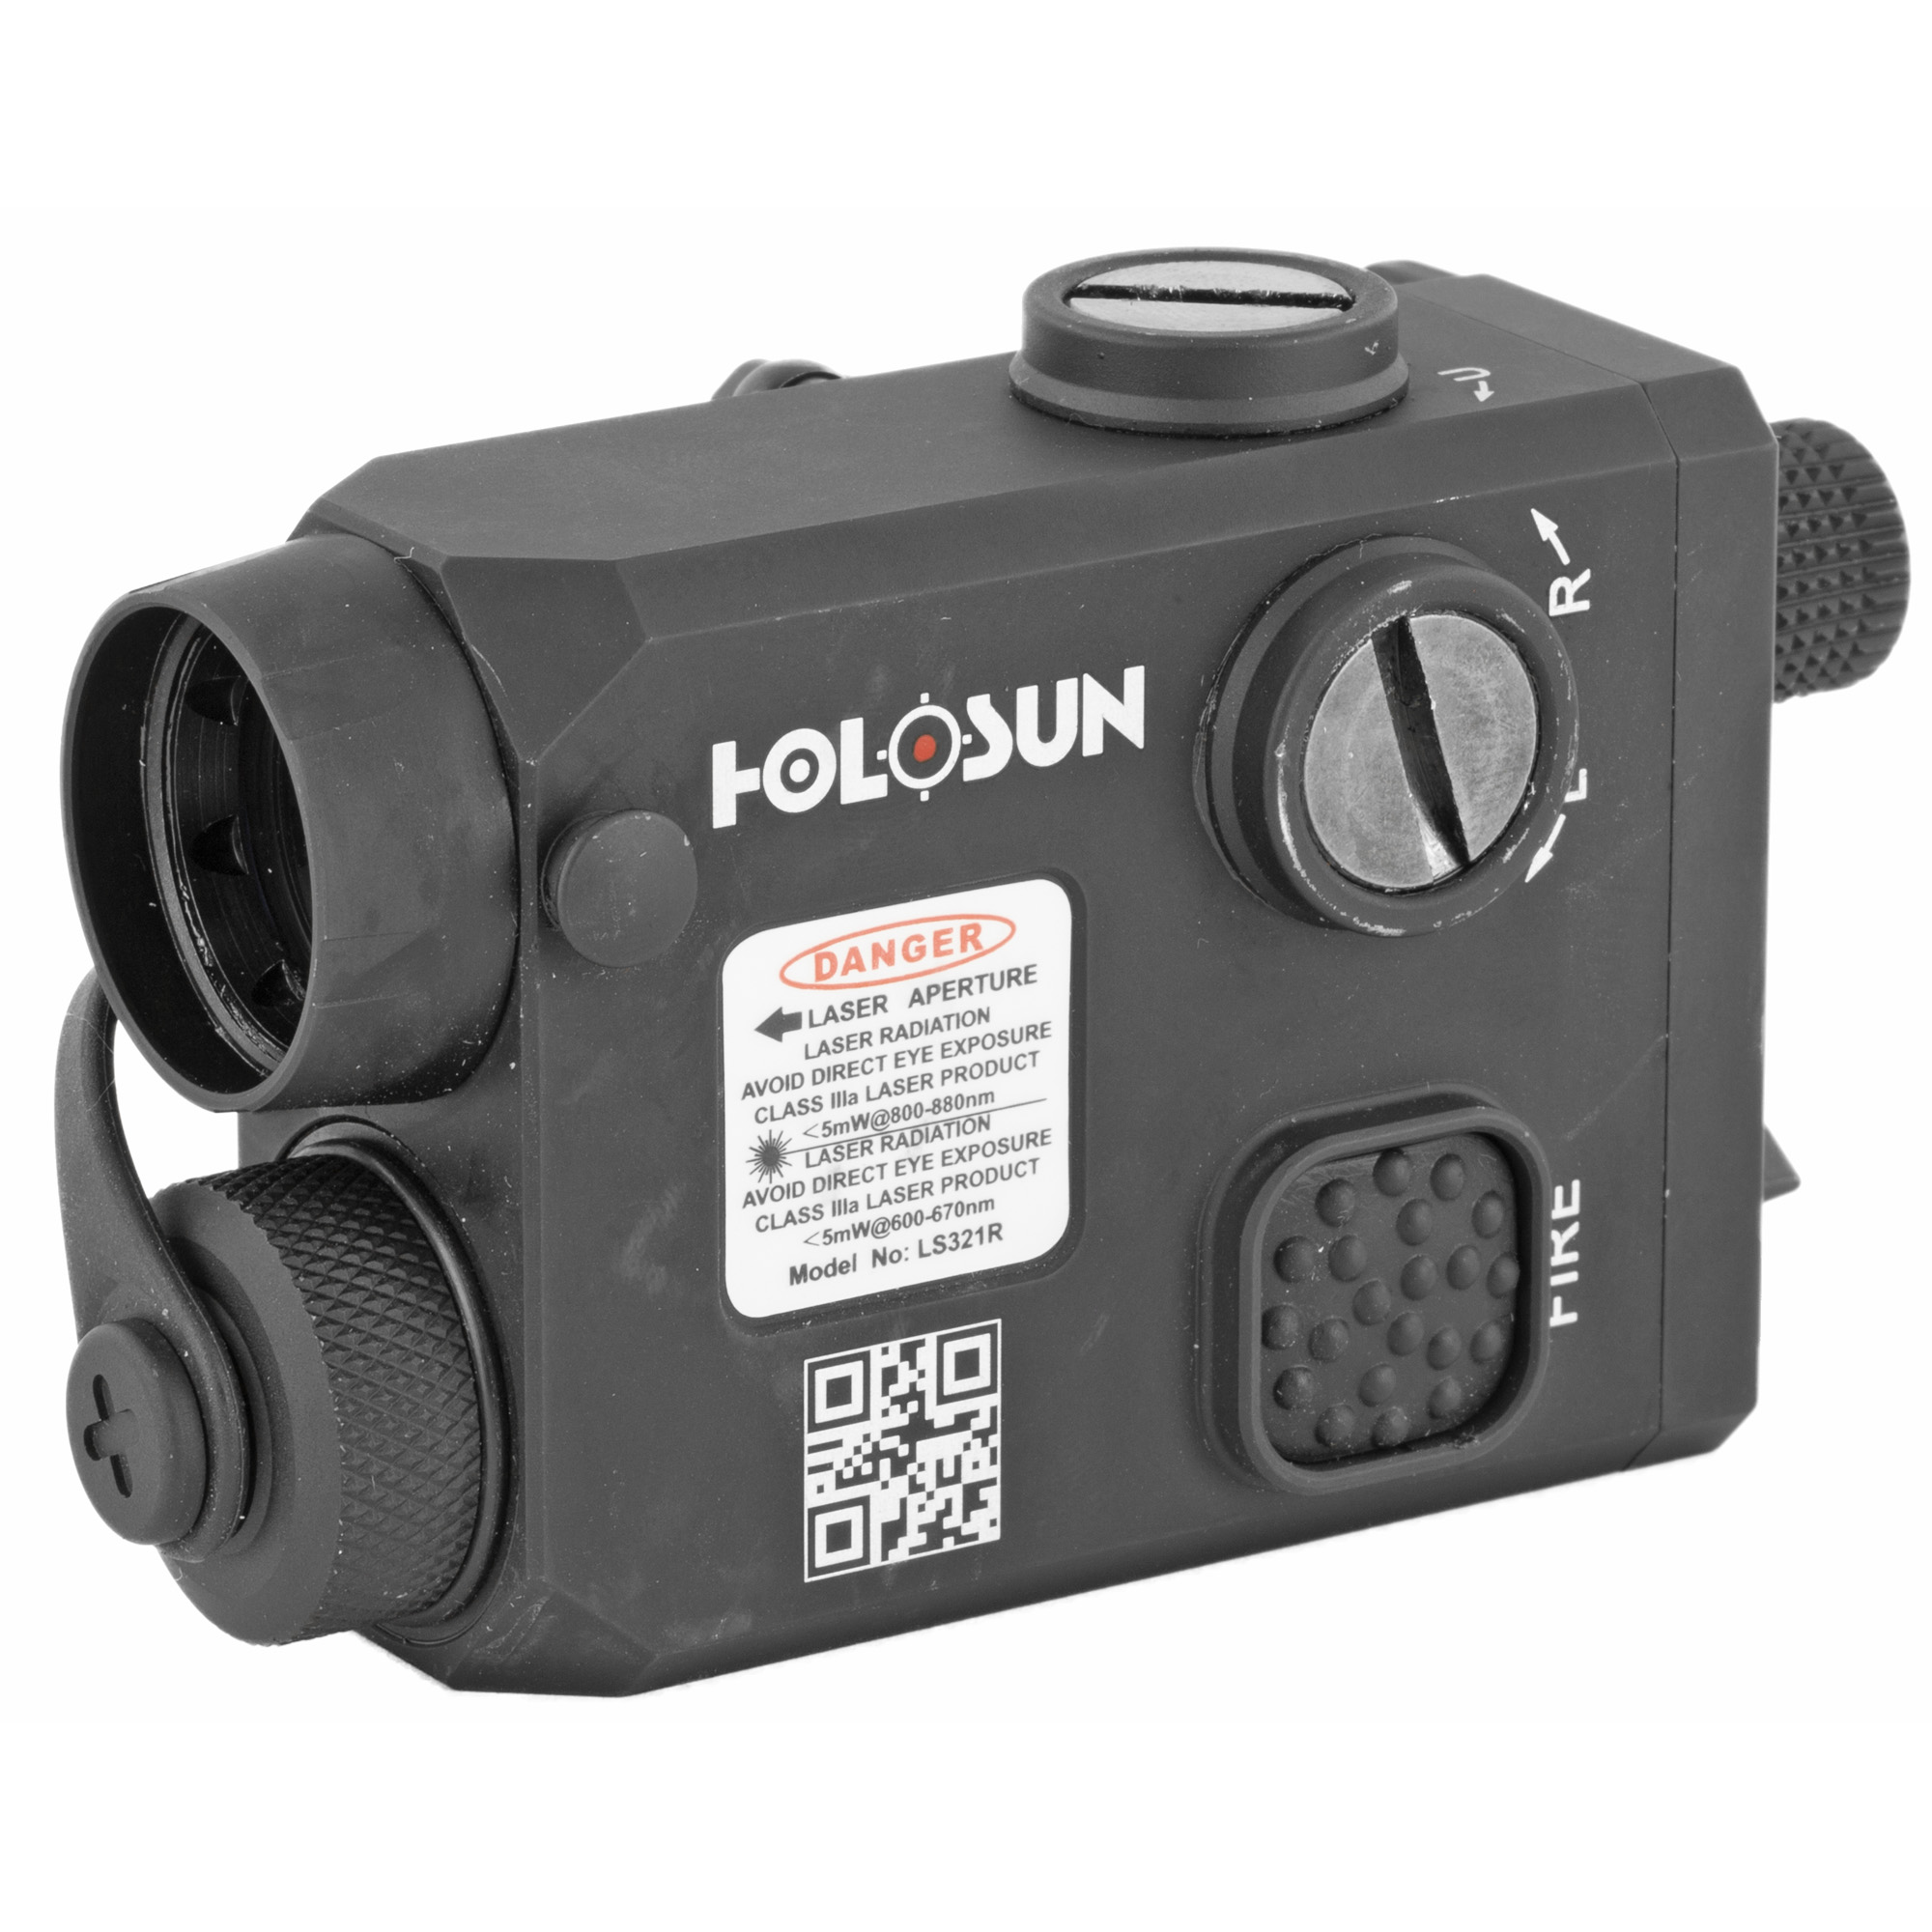 """LS321 is a multi-laser device that integrates red laser"""" IR laser and IR illuminator. It has a mode selector to choose the different functions. The operator uses W&E adjuster to adjust the 3 laser beams at the same time. The IR illuminator-focusing knob is located at the rear of the unit for ease of adjustment for operator."""